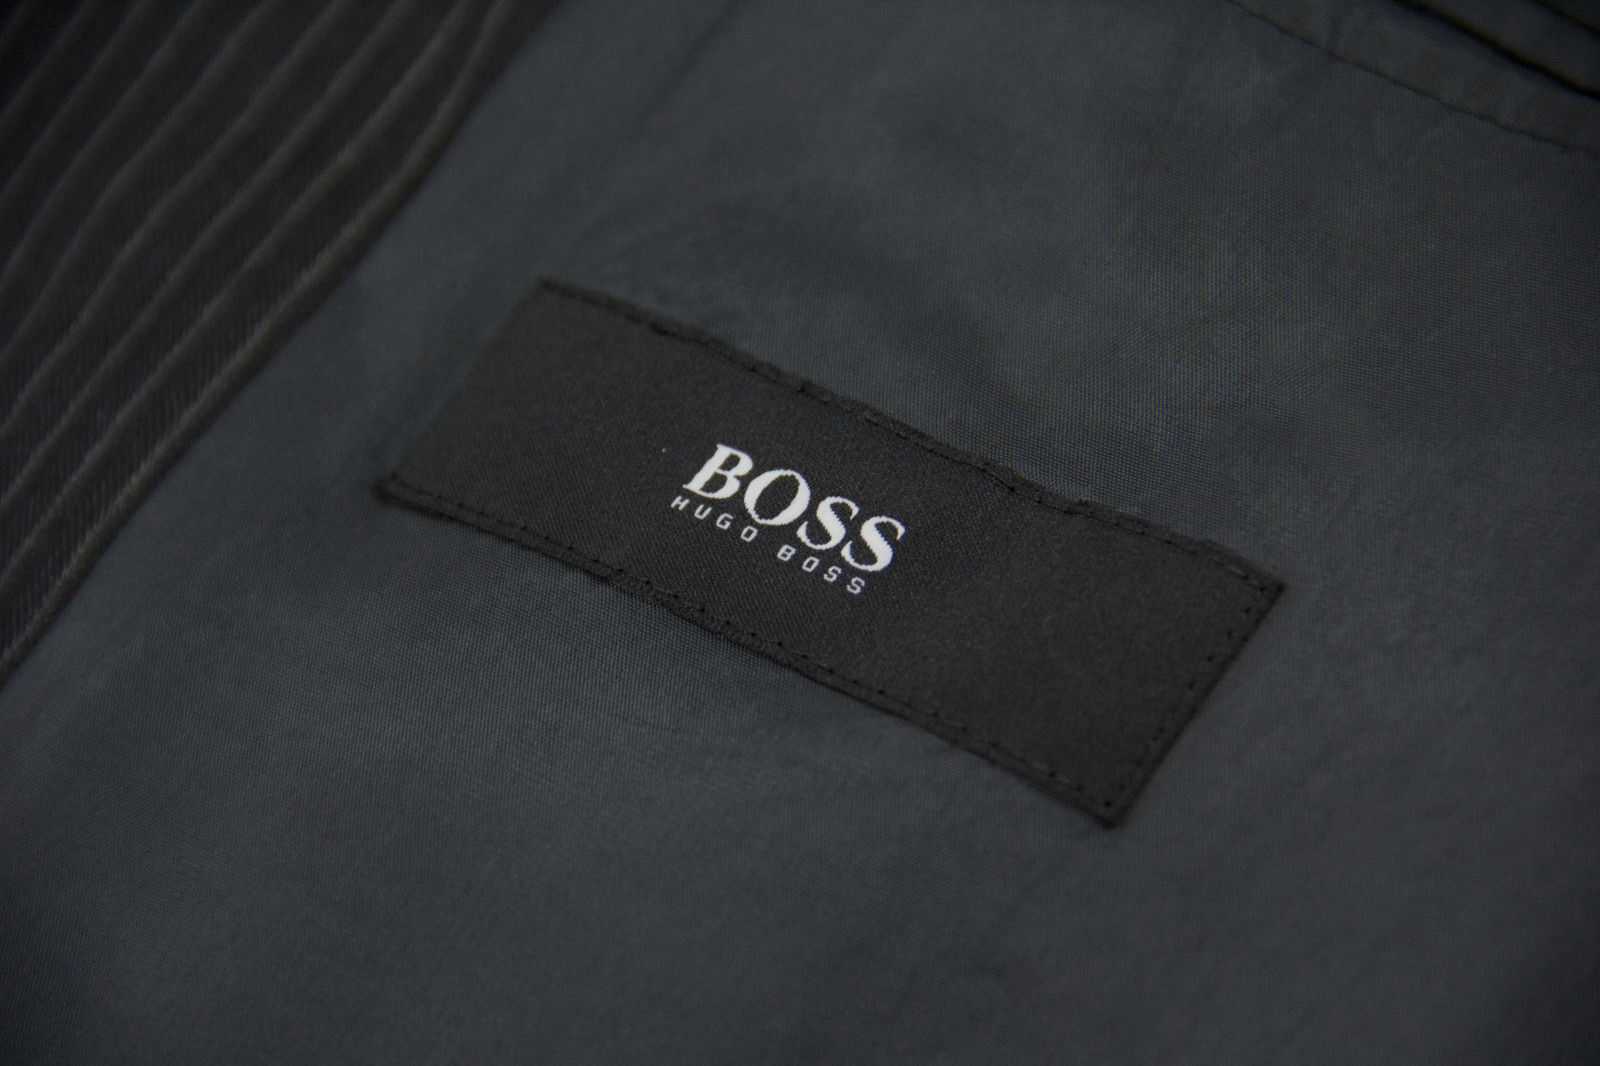 HUGO BOSS Super 100's Wool Gray Striped 3 Button Suit US 38R - secondfirst